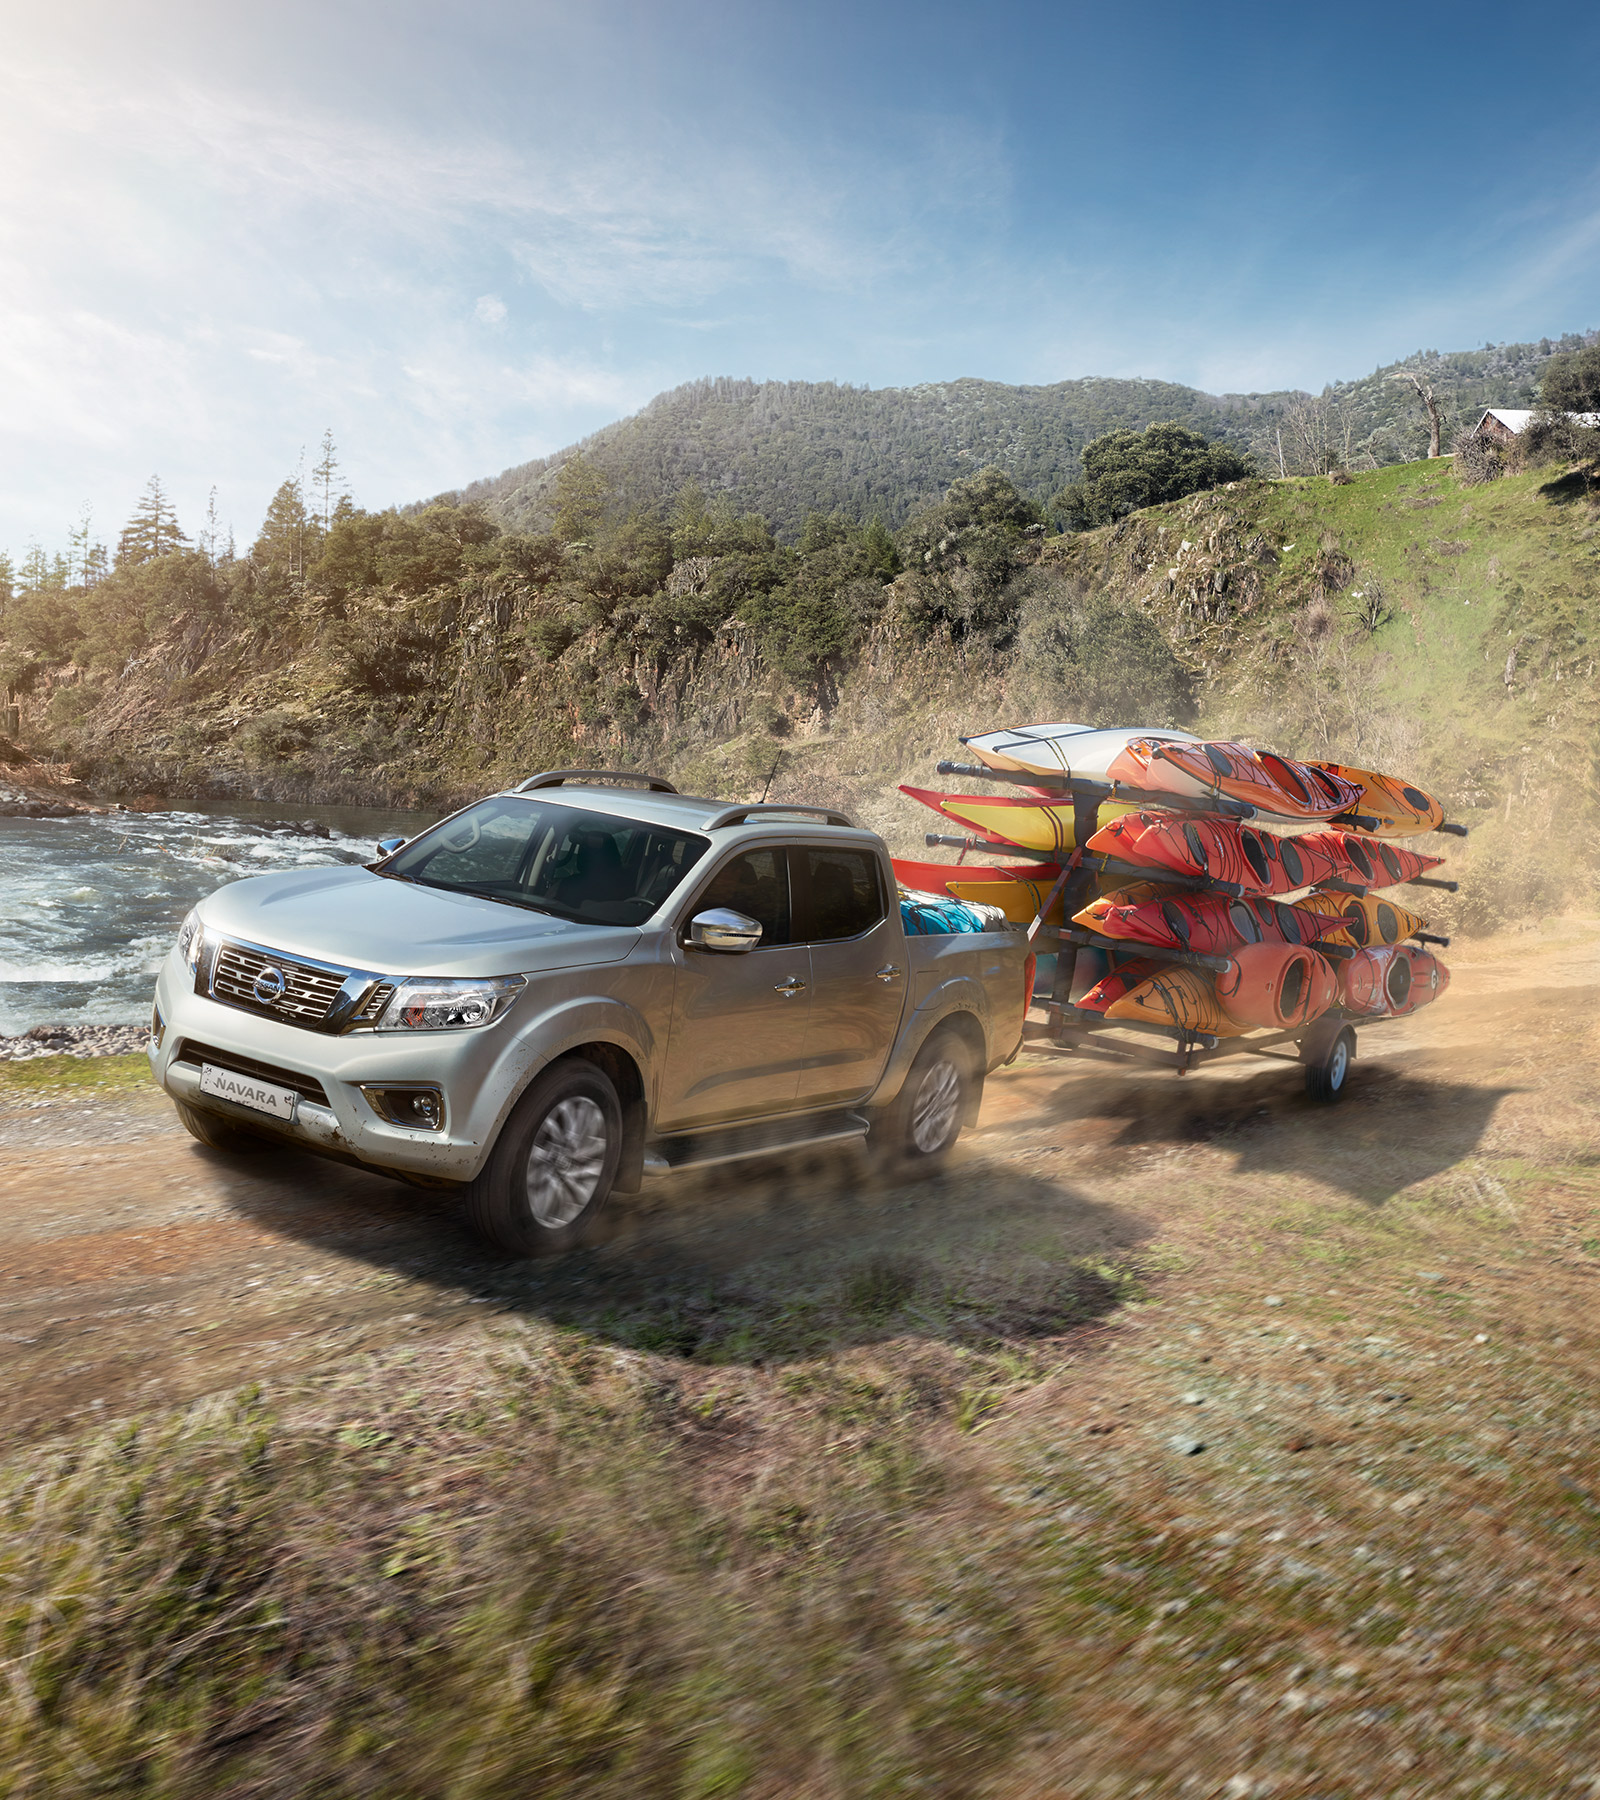 Nissan Navara towing canoes in the mountain close to a lake